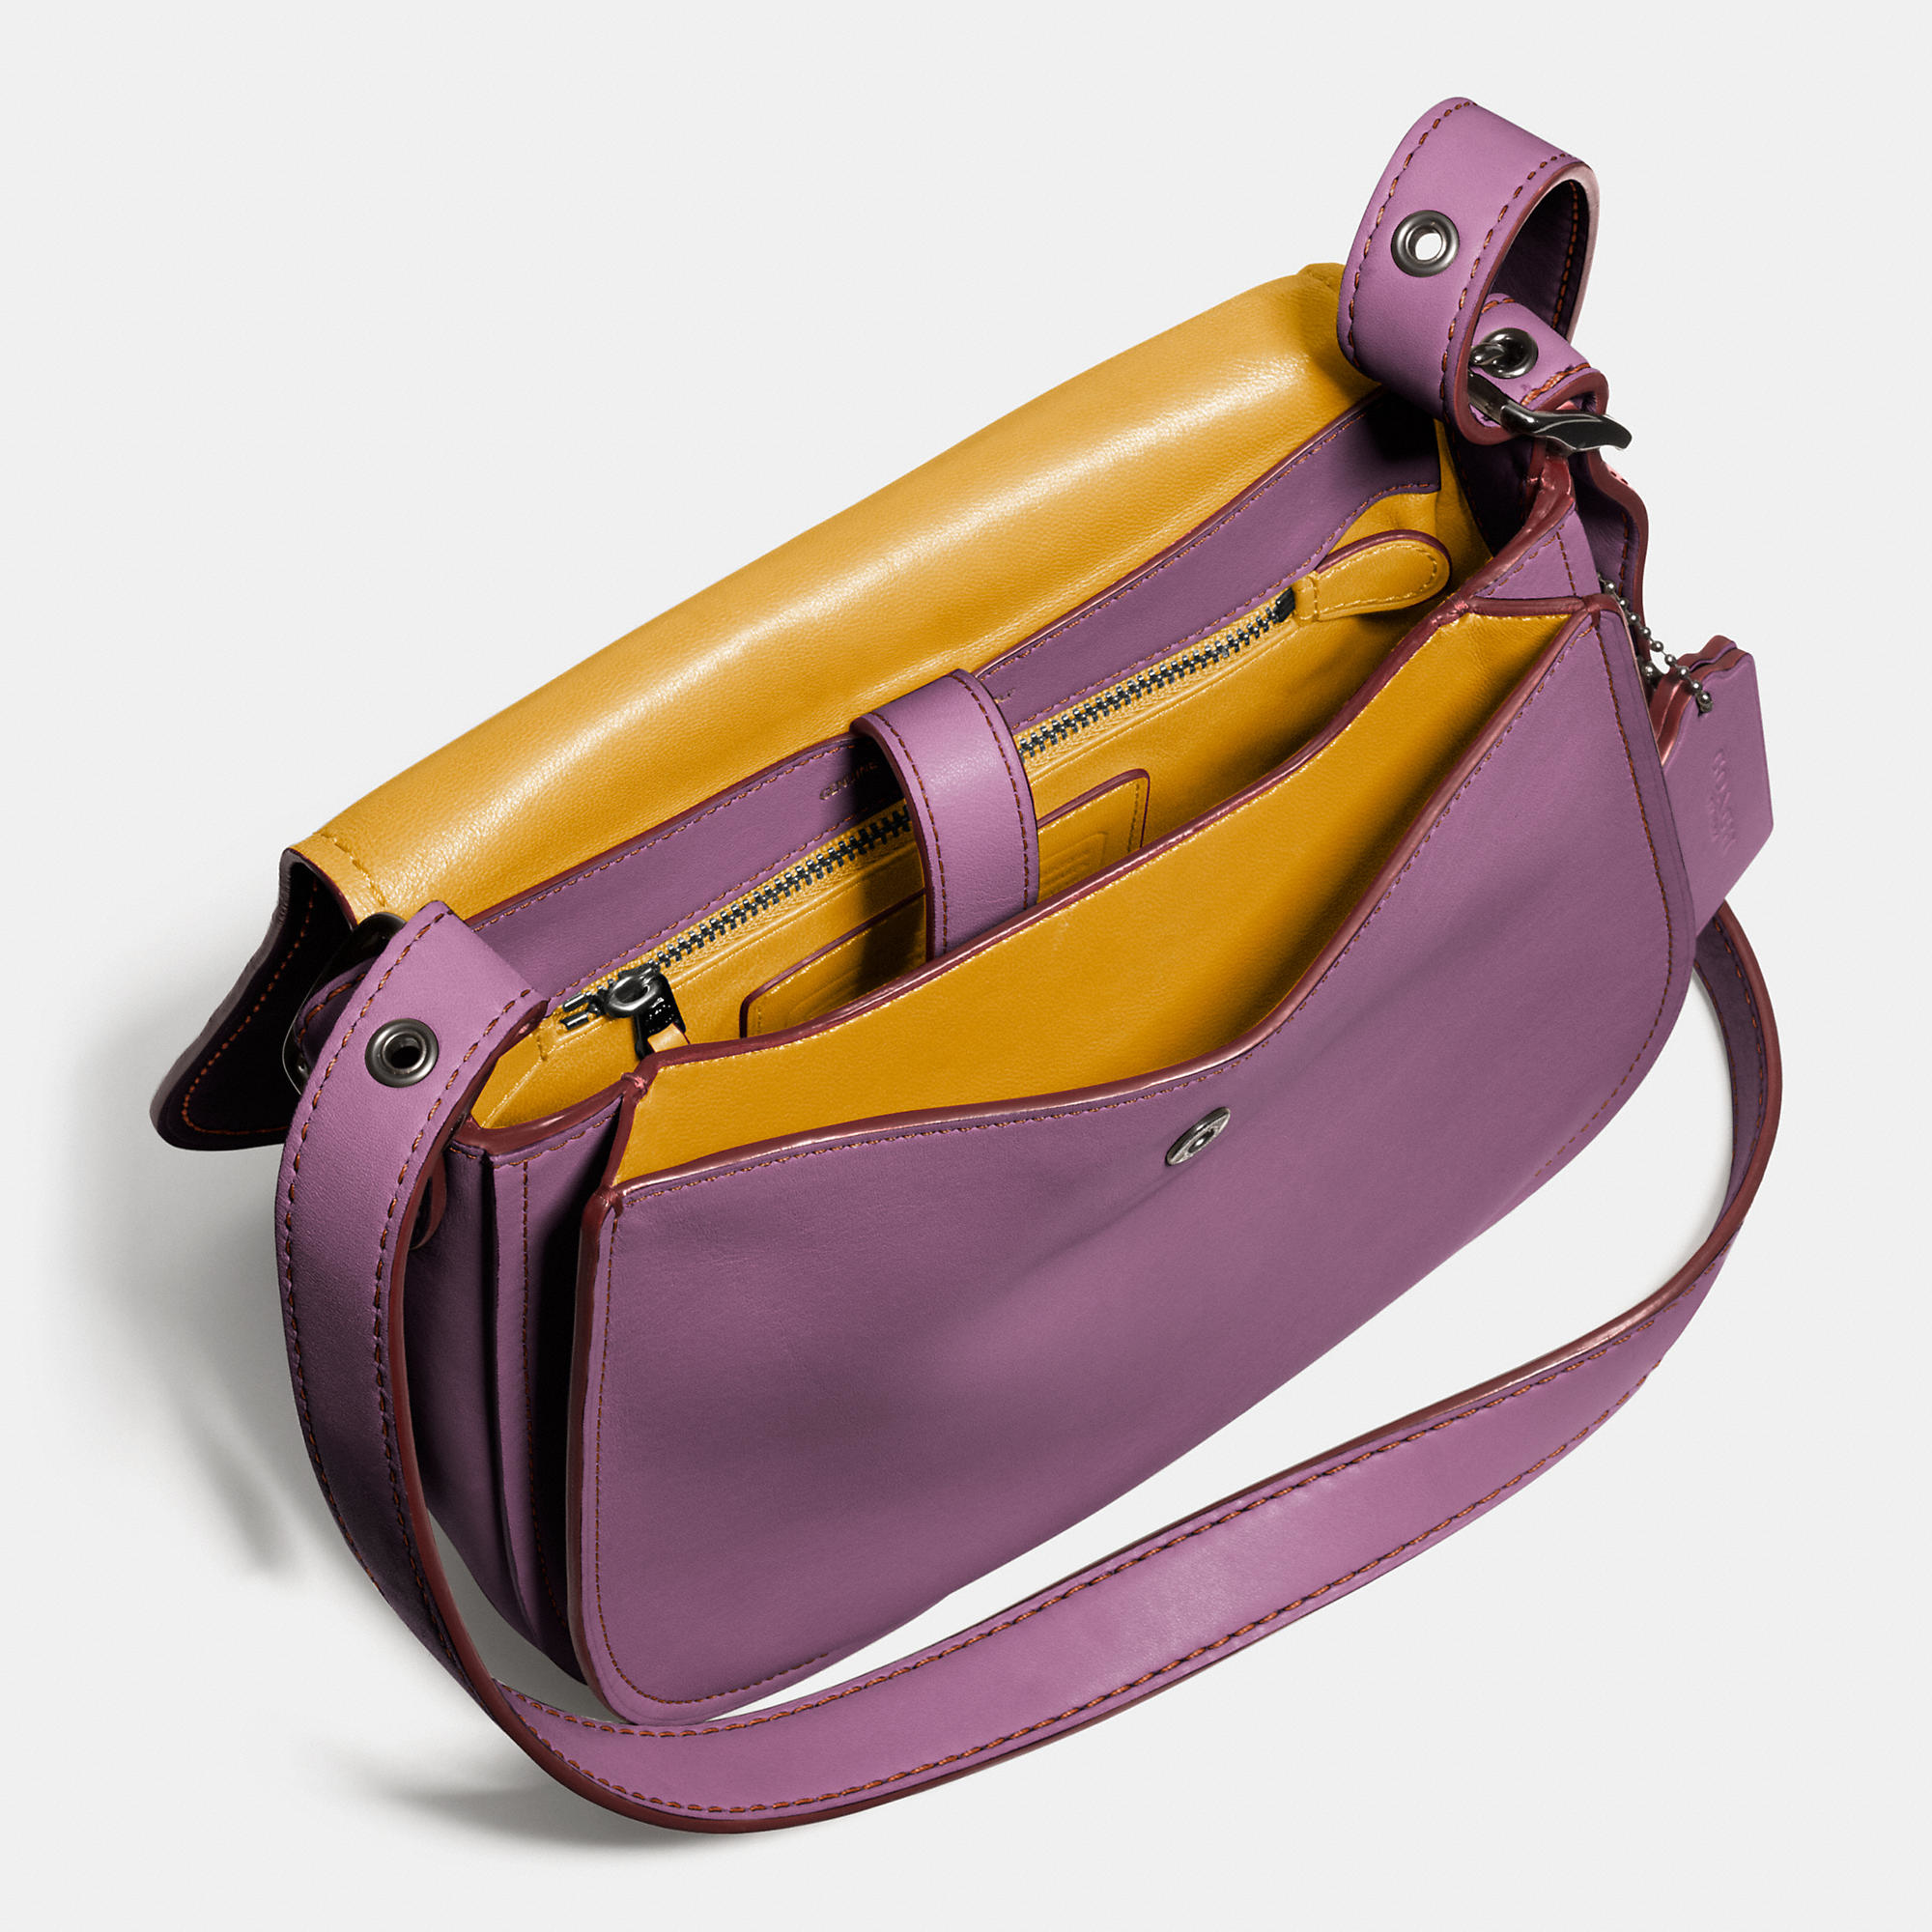 a8add02bf1c2f ... sale lyst coach 23 leather saddle bag in purple c33cd b6c51 ...